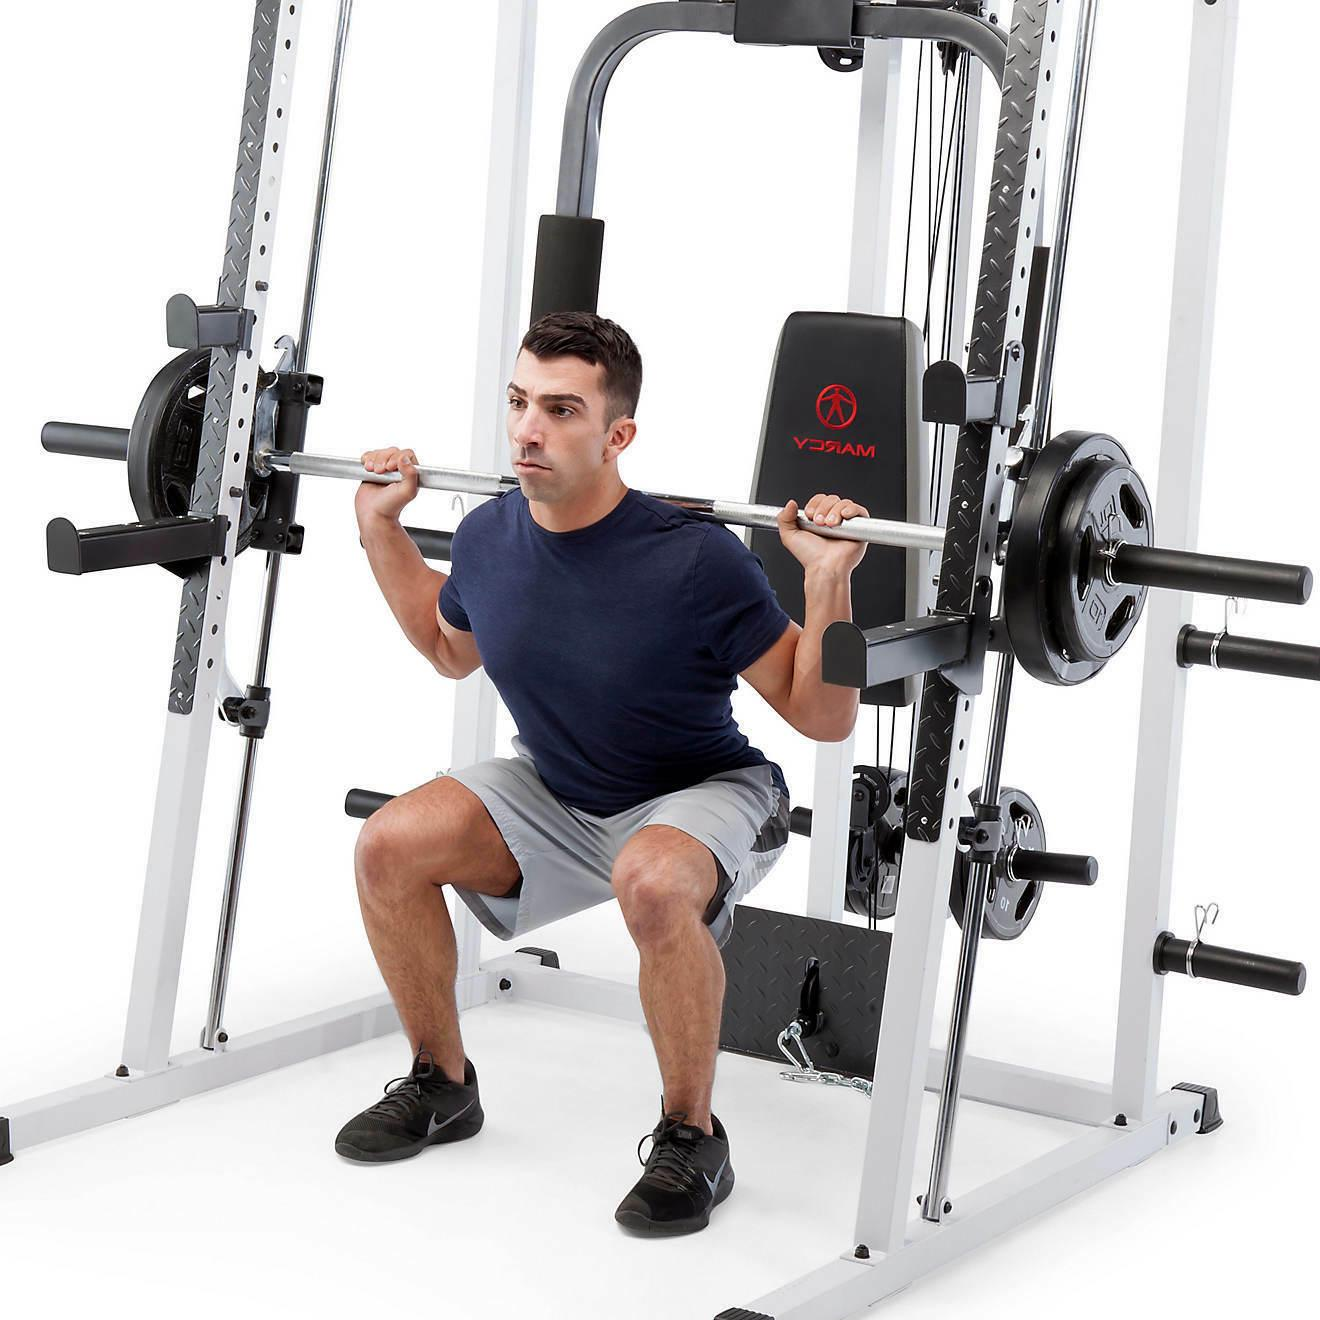 Marcy MD-5191 Smith Cage Home Gym - New!! - Trusted Seller -